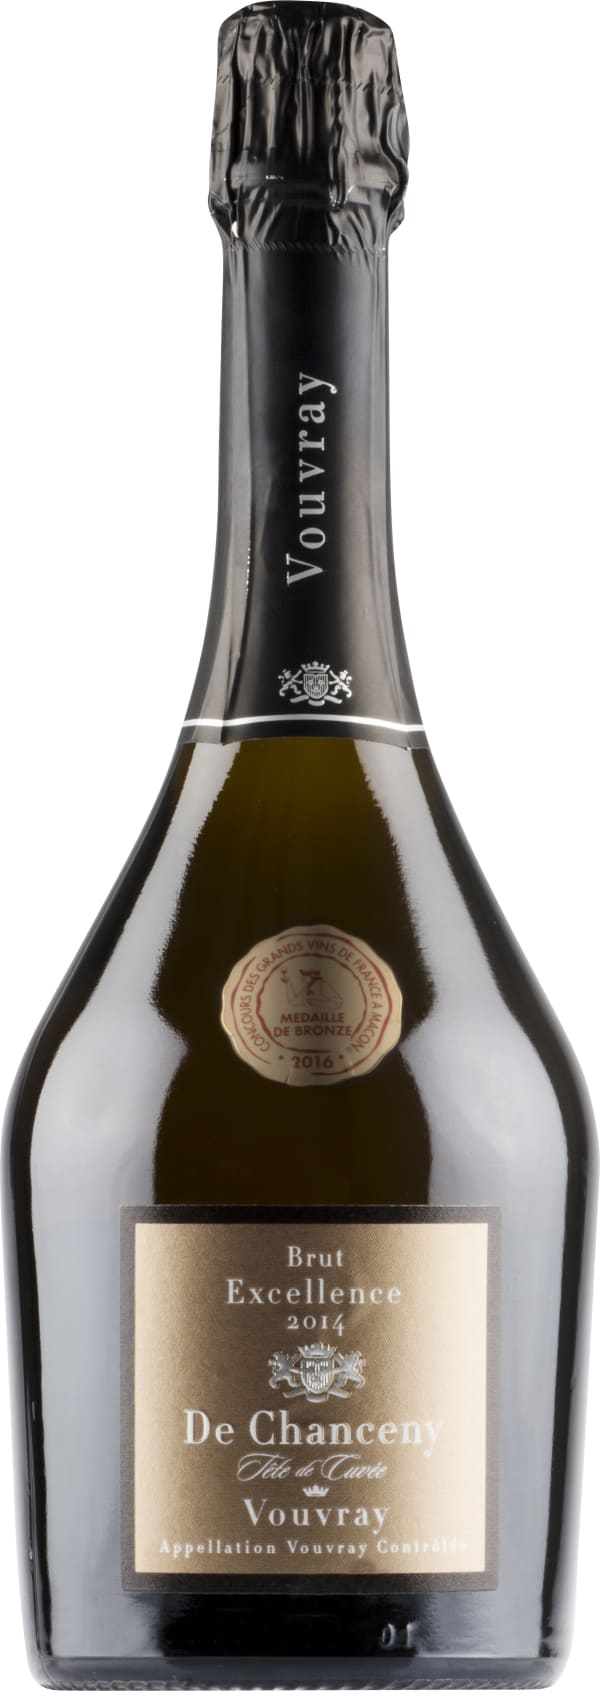 De Chanceny Excellence Vouvray Brut 2013